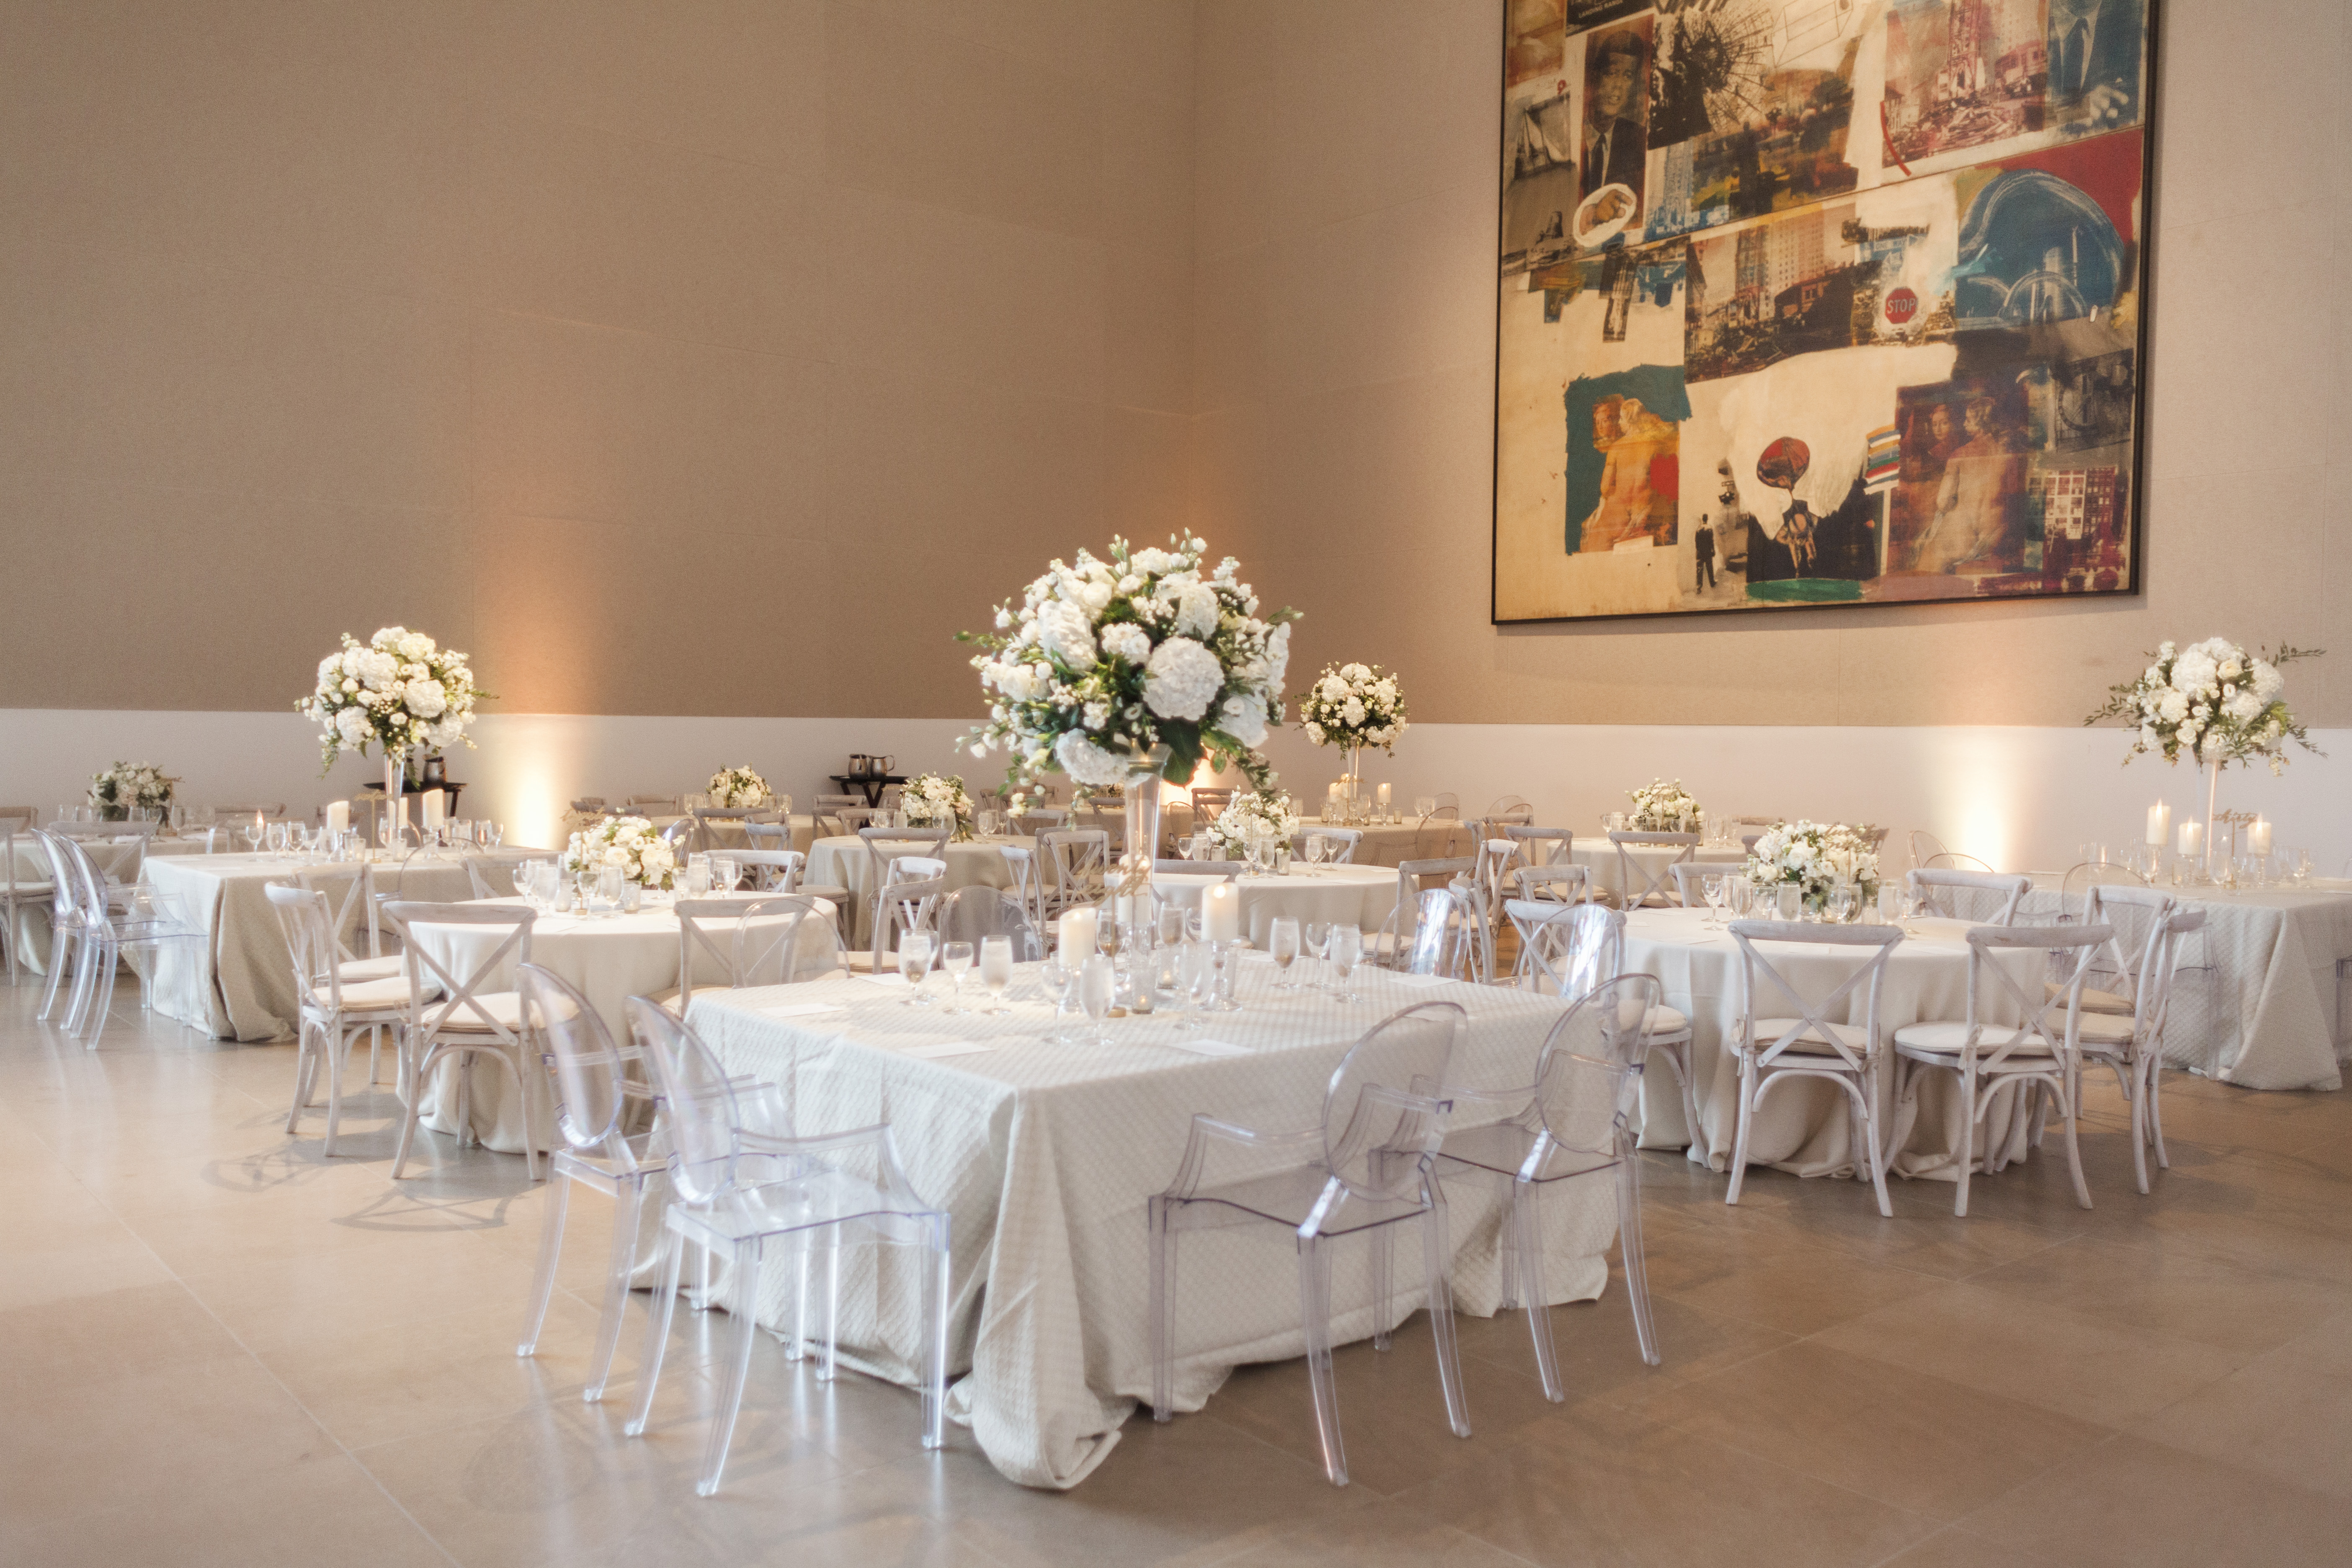 Seaton + Embry Wedding - As You Wish Events